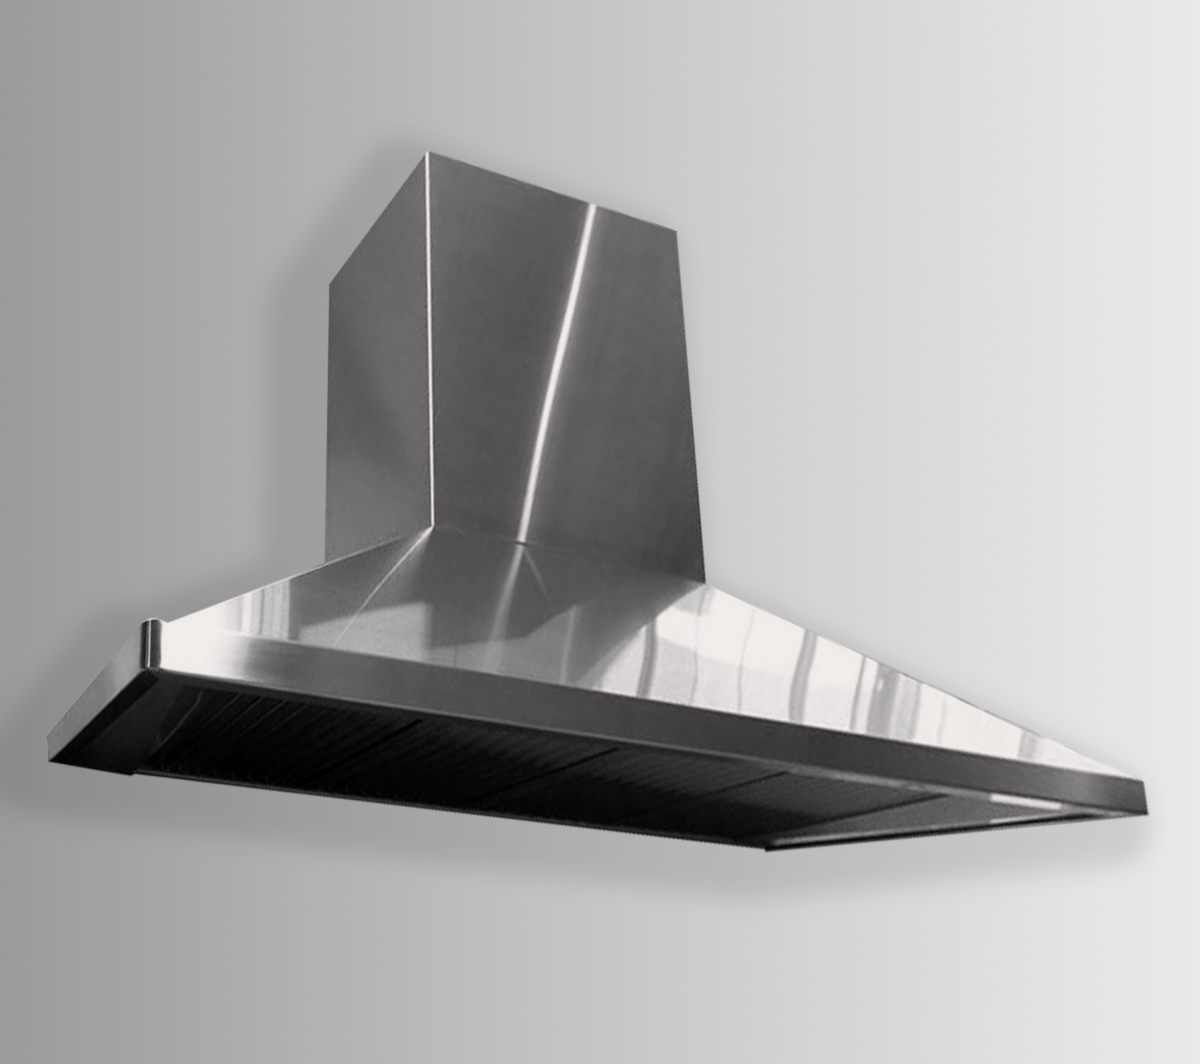 Wall mounted Regis in stainless steel non-directional body with brushed stianless steel trim.